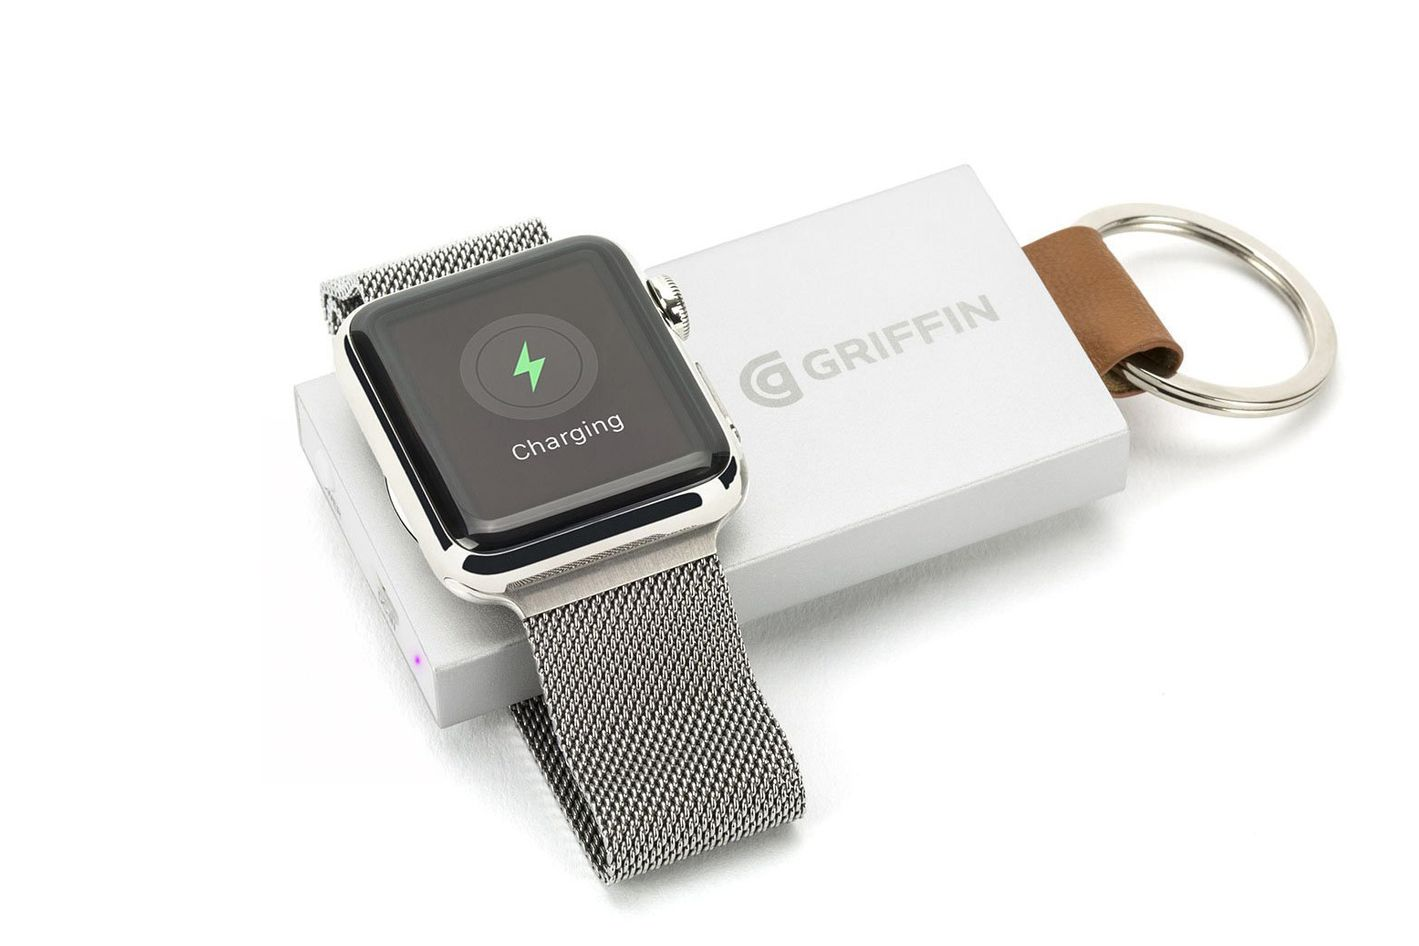 Griffin Travel Power Bank Backup Battery